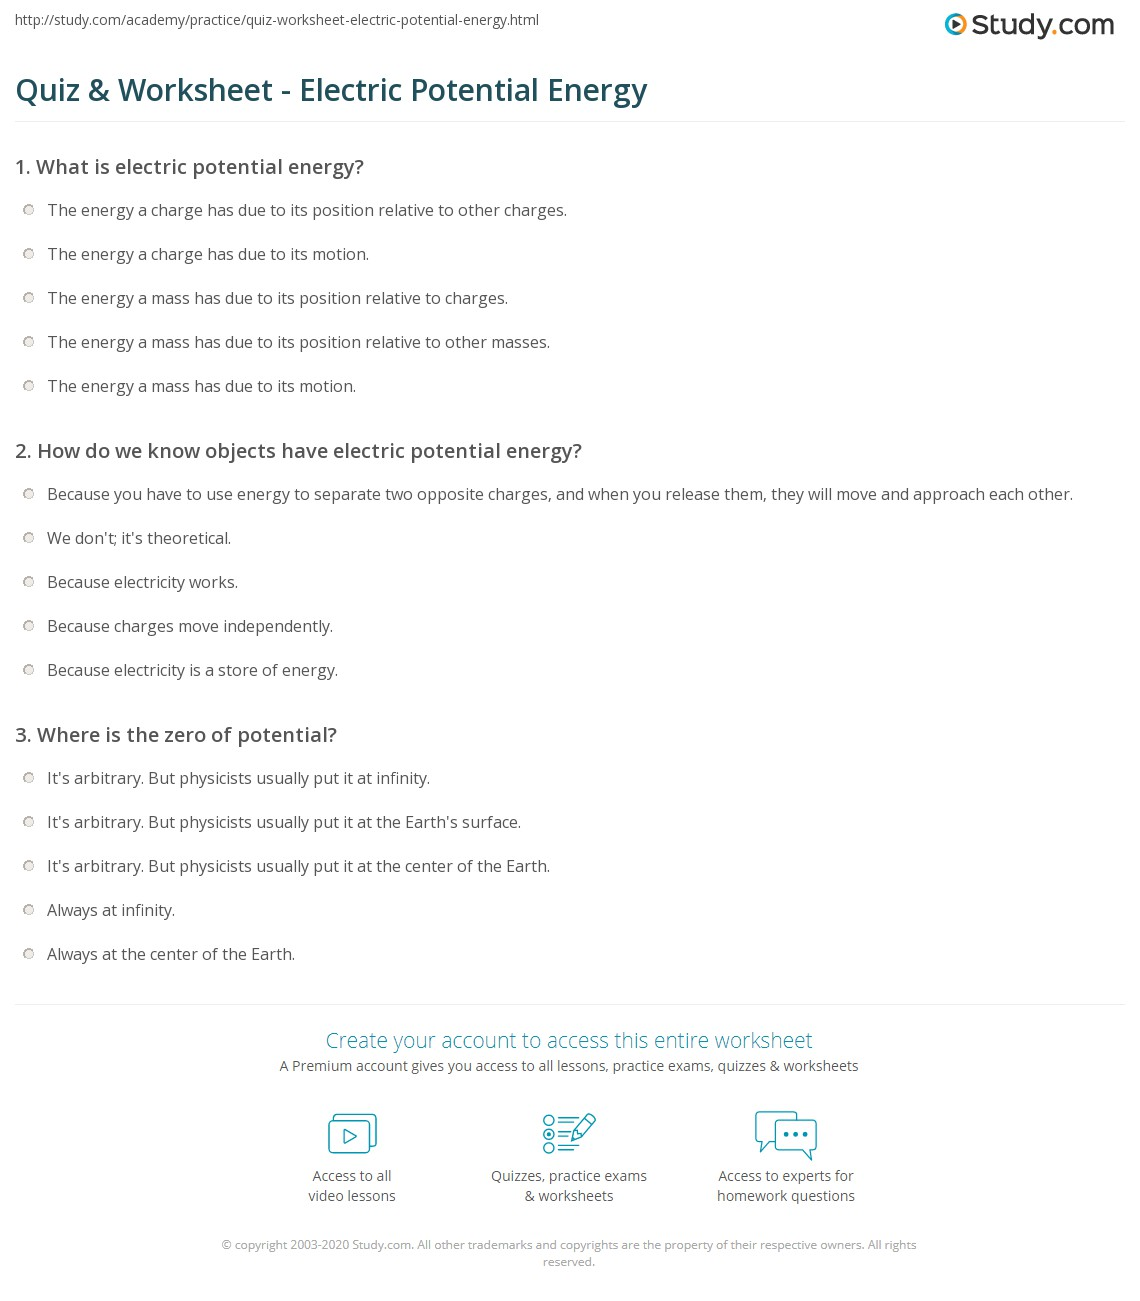 Quiz & Worksheet - Electric Potential Energy | Study.com